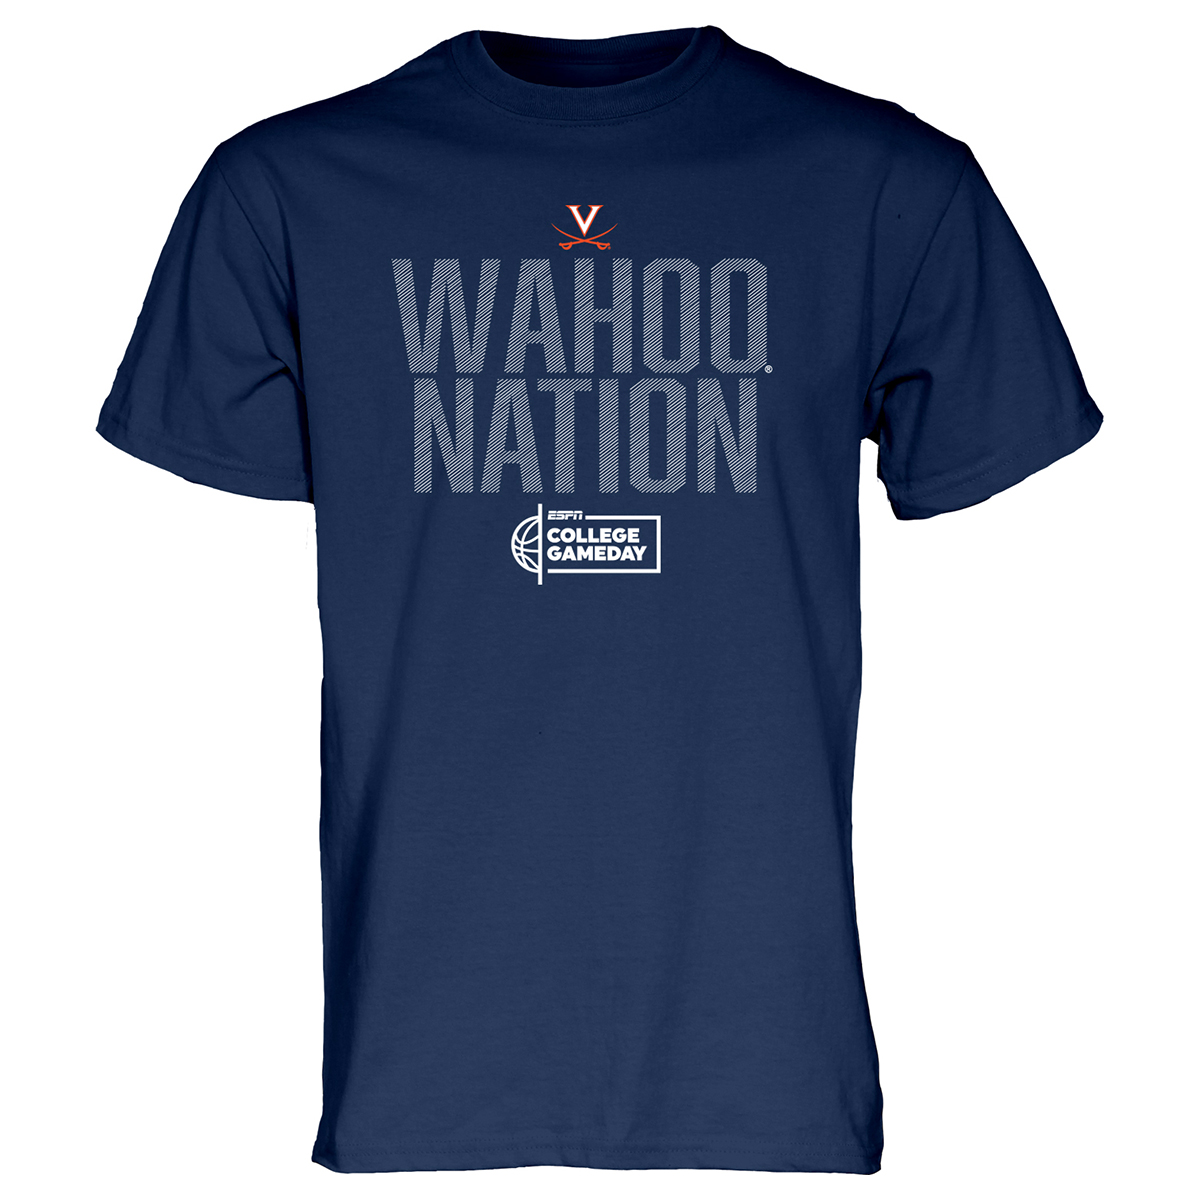 University of Virginia College Gameday Wahoo Nation T-shirt